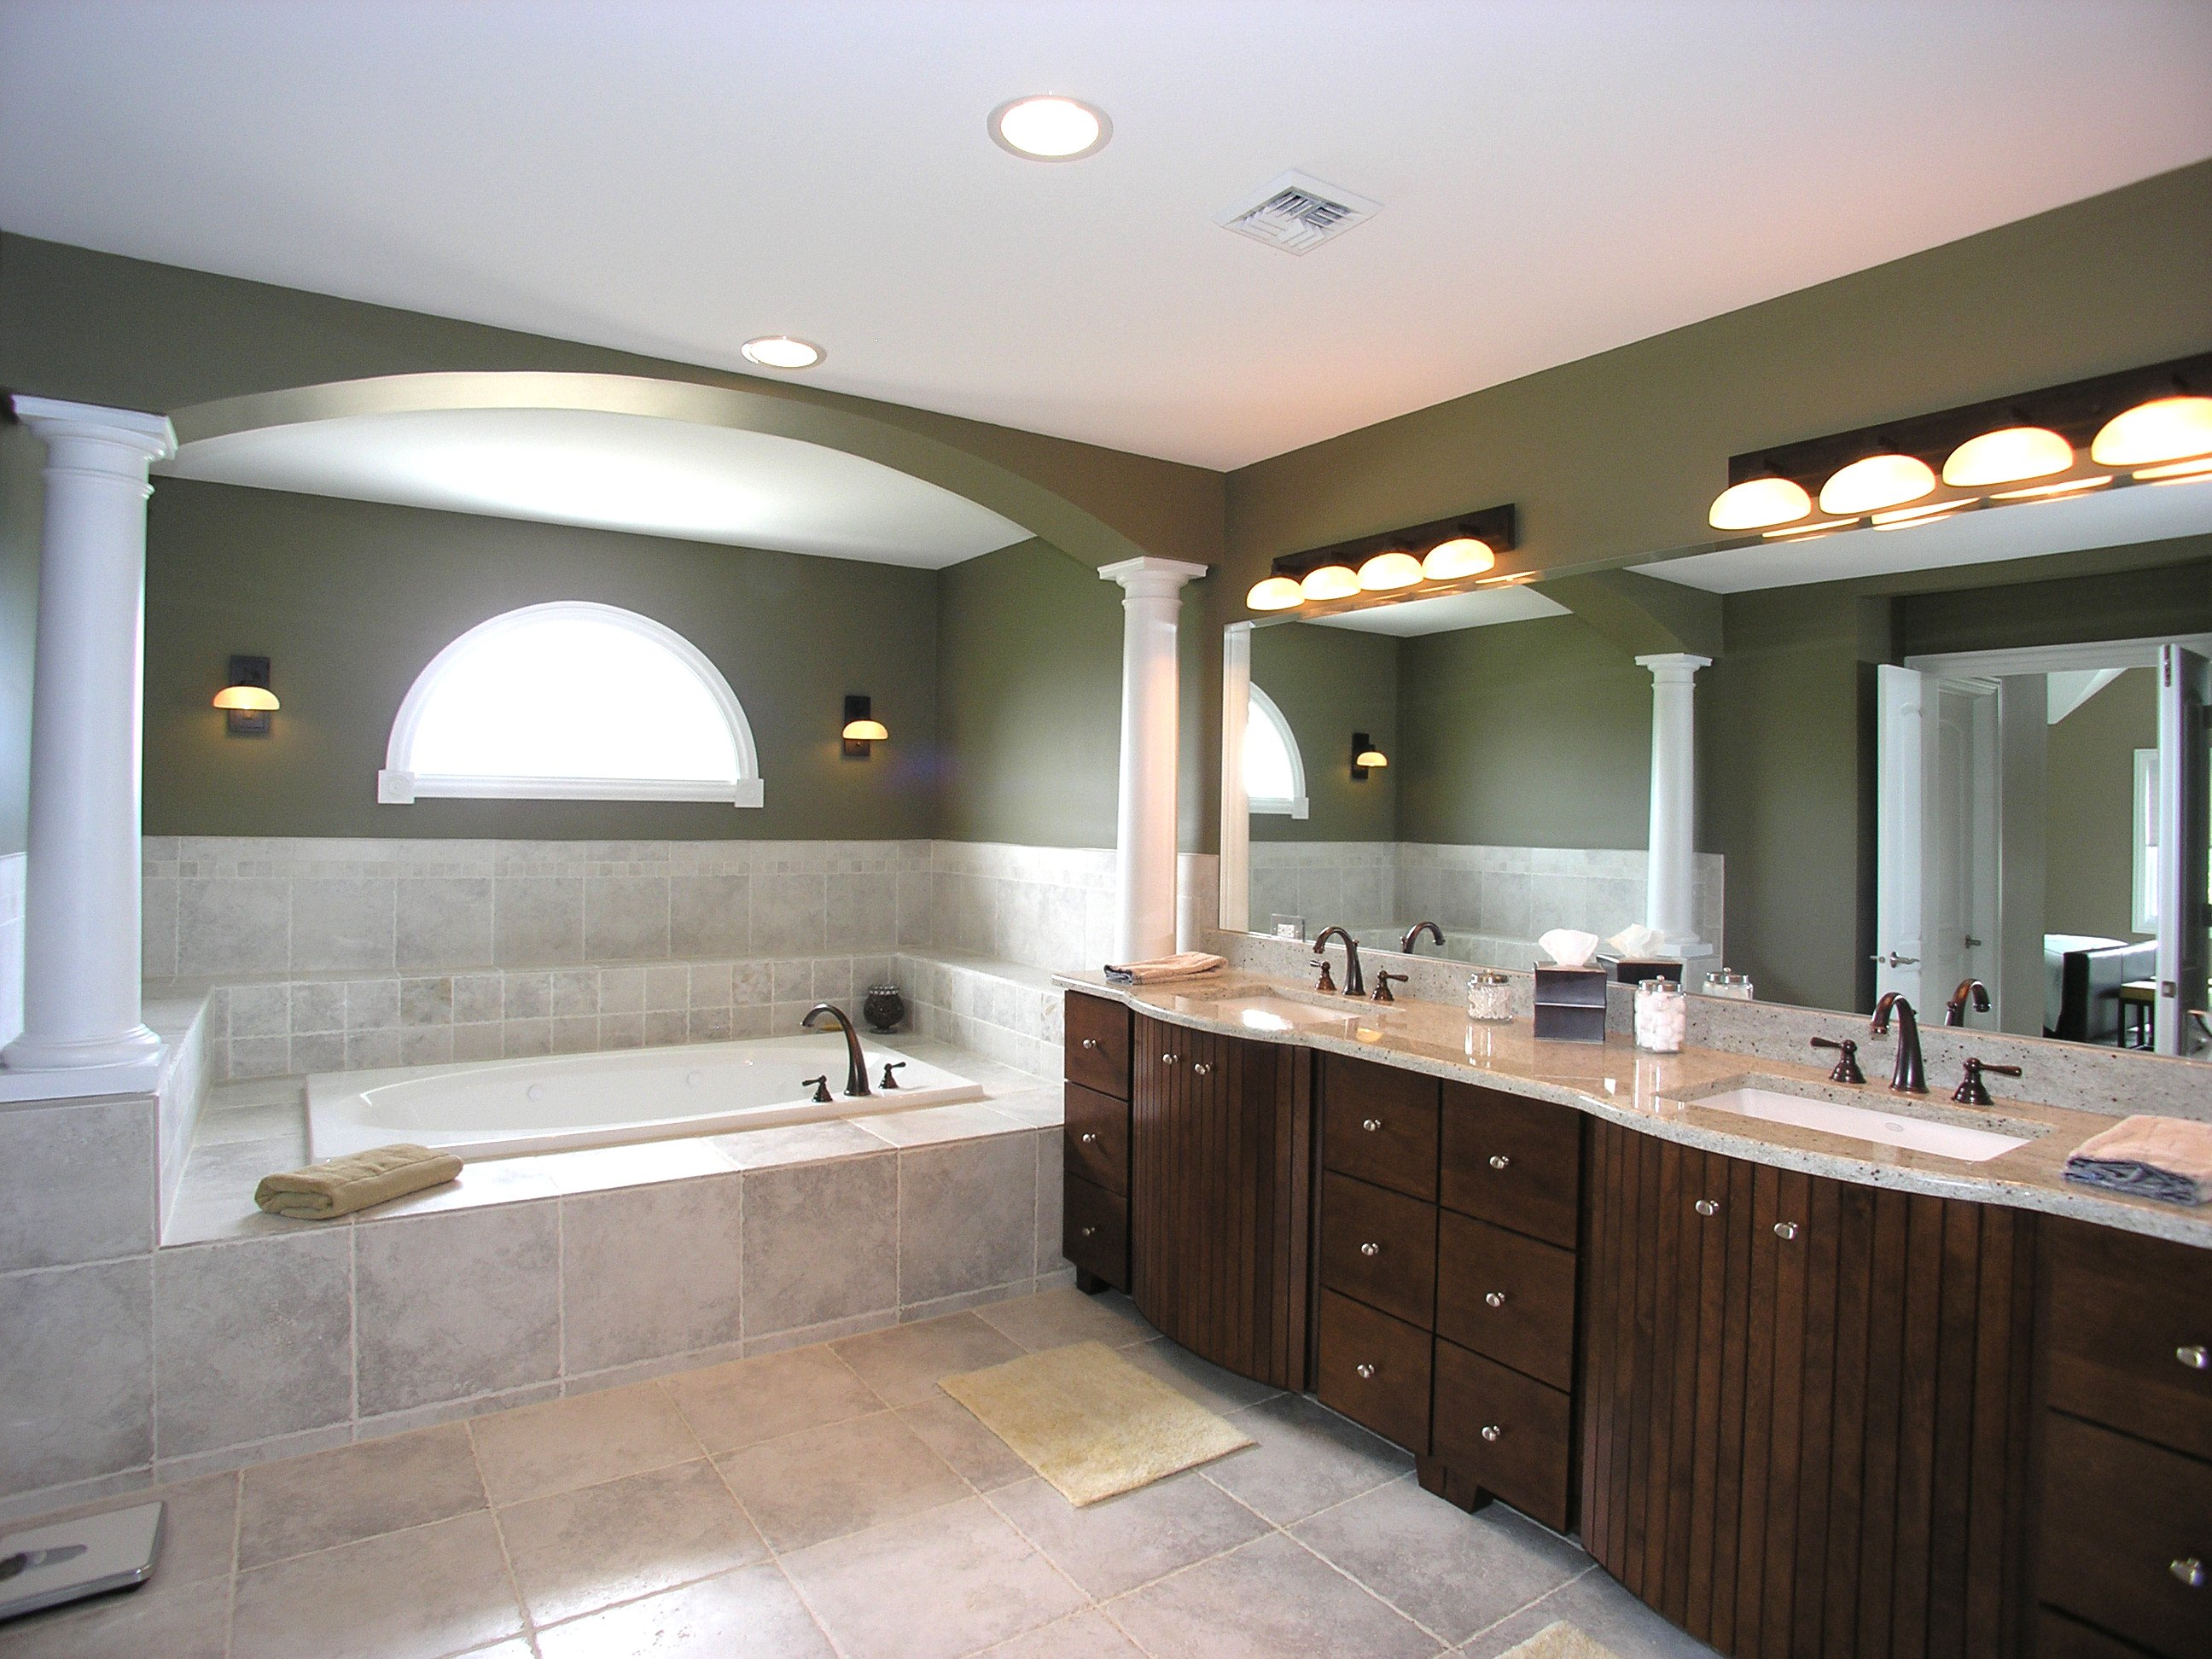 bath room on The Different Styles Of Bathroom Lighting